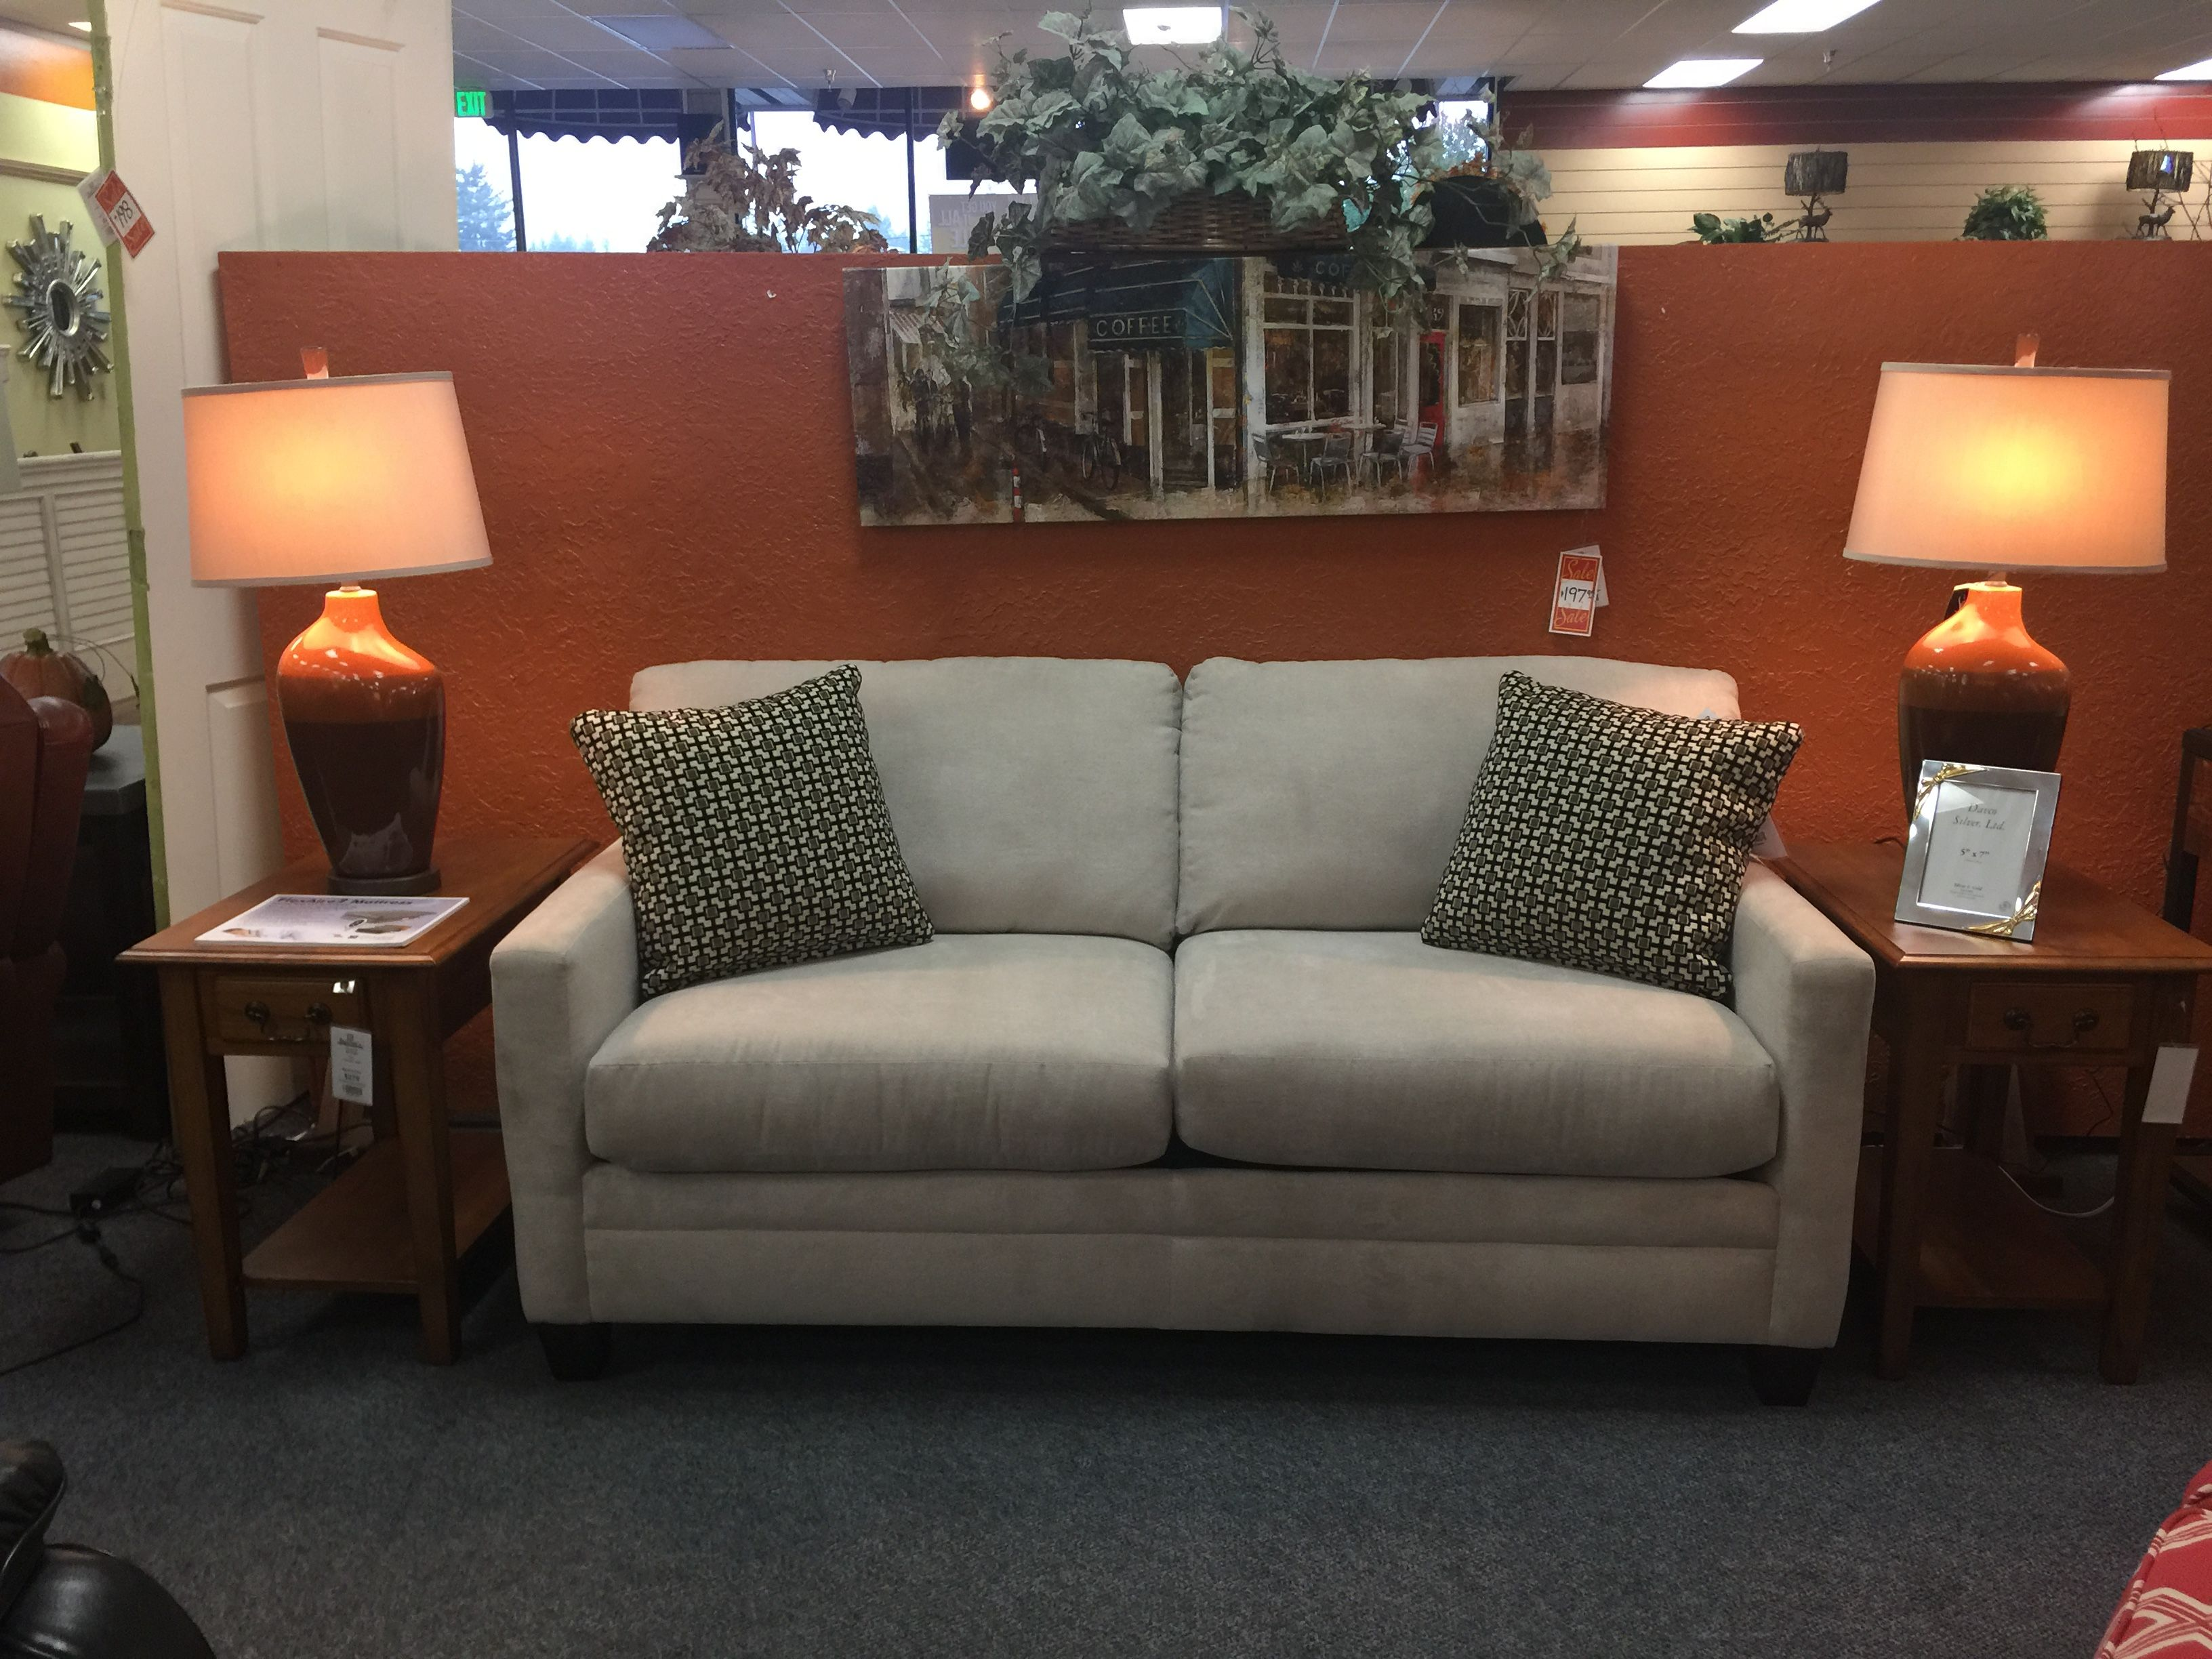 Full size sleeper with a Memory Foam mattress!  Just in time for those holiday guests!!!